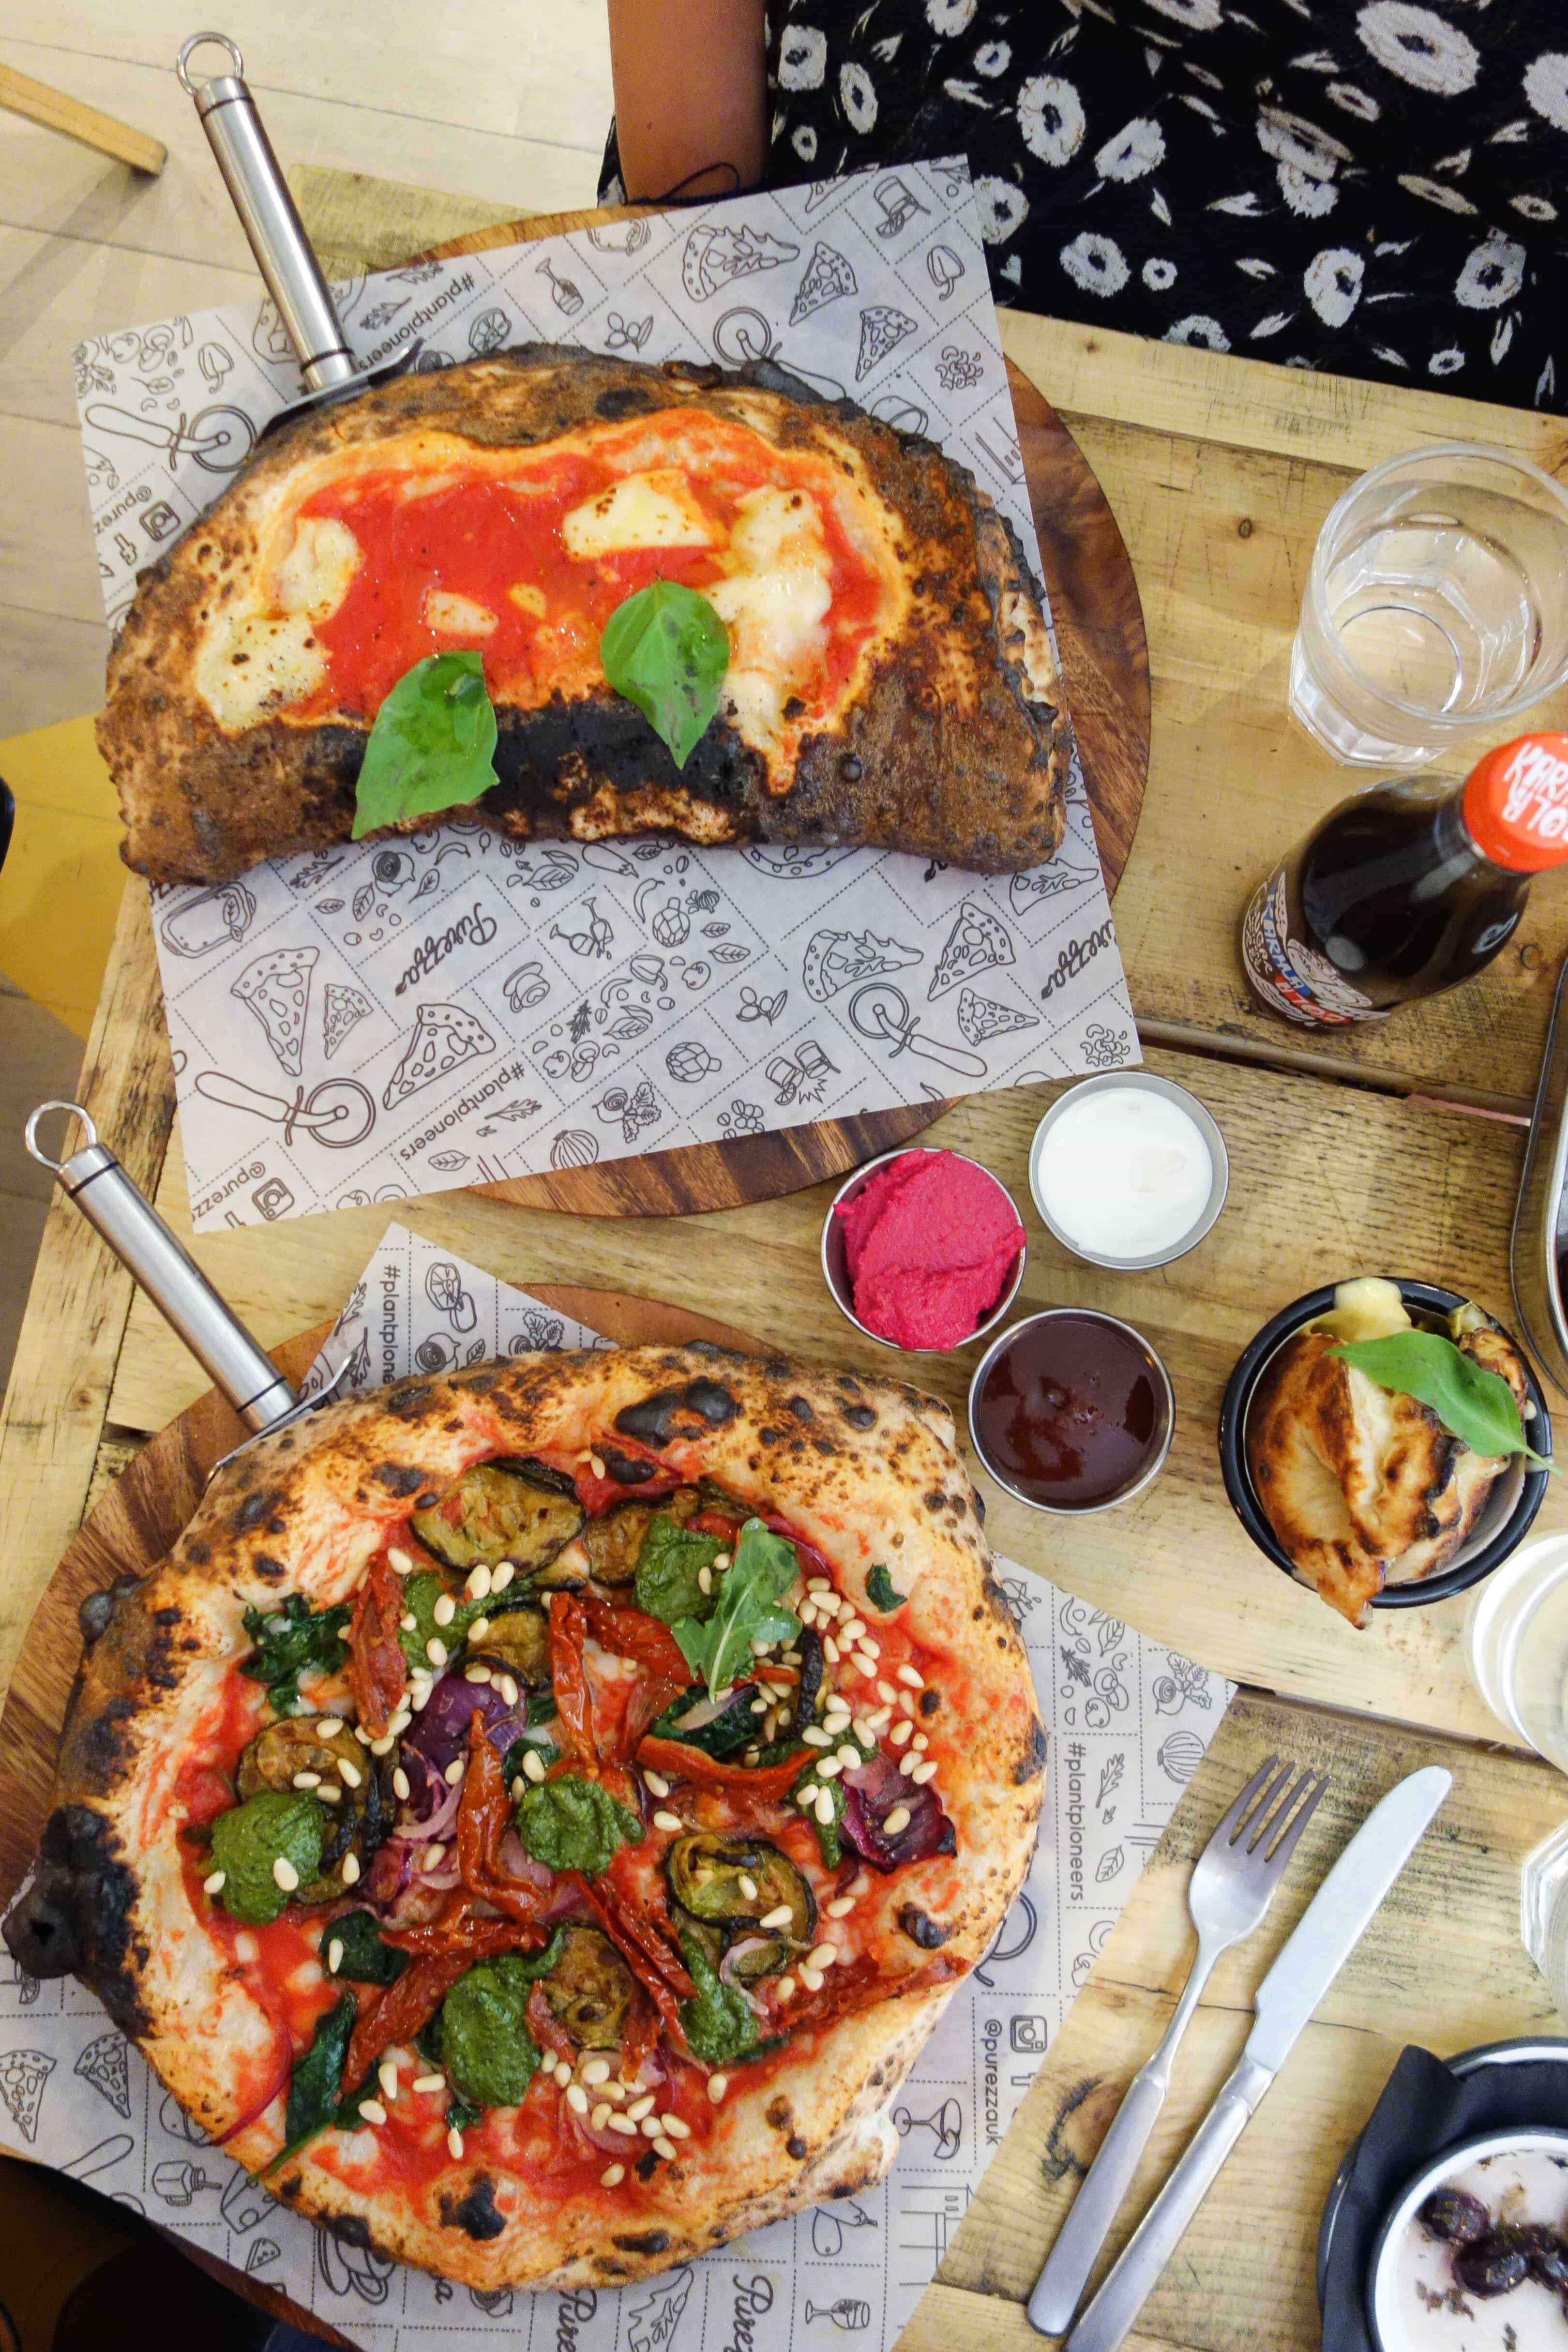 Vegan Pizza, Purezza - One of my London Food Finds this month. Check out the whole list of the best things I've eaten this month on notsobasiclondon.com